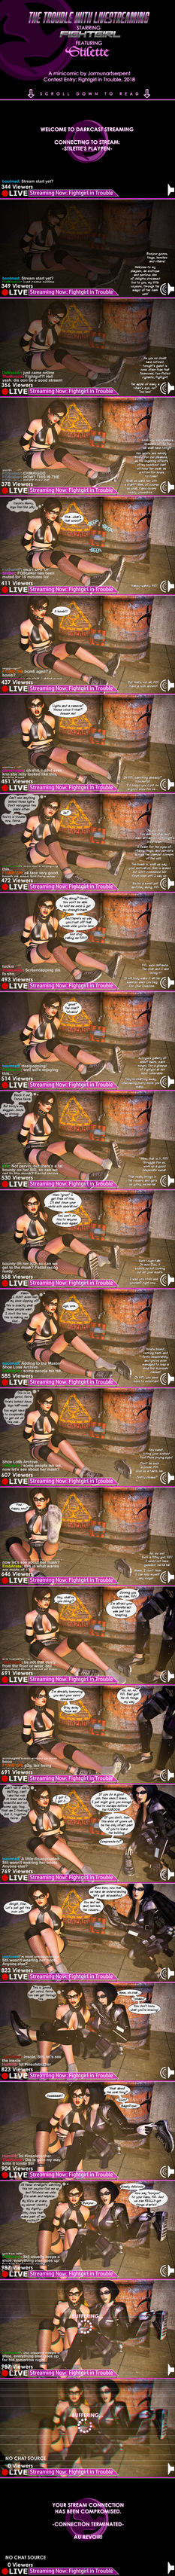 The Trouble with Livestreaming - Fightgirl Contest by jormunartserpent